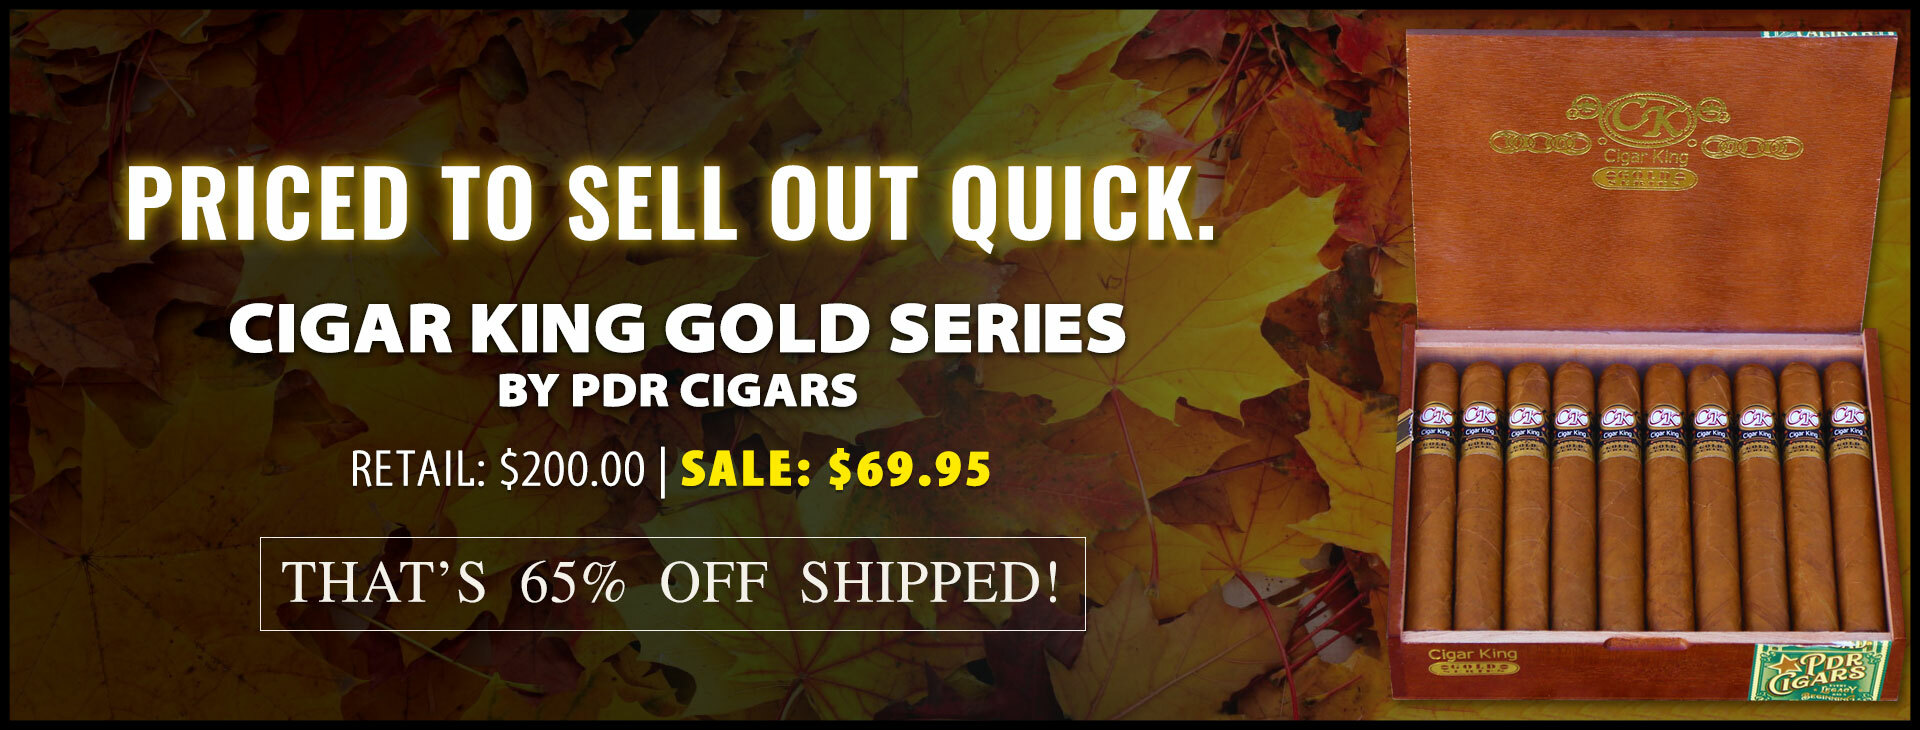 BLOWOUT: 65% OFF Cigar King Gold Series By PDR